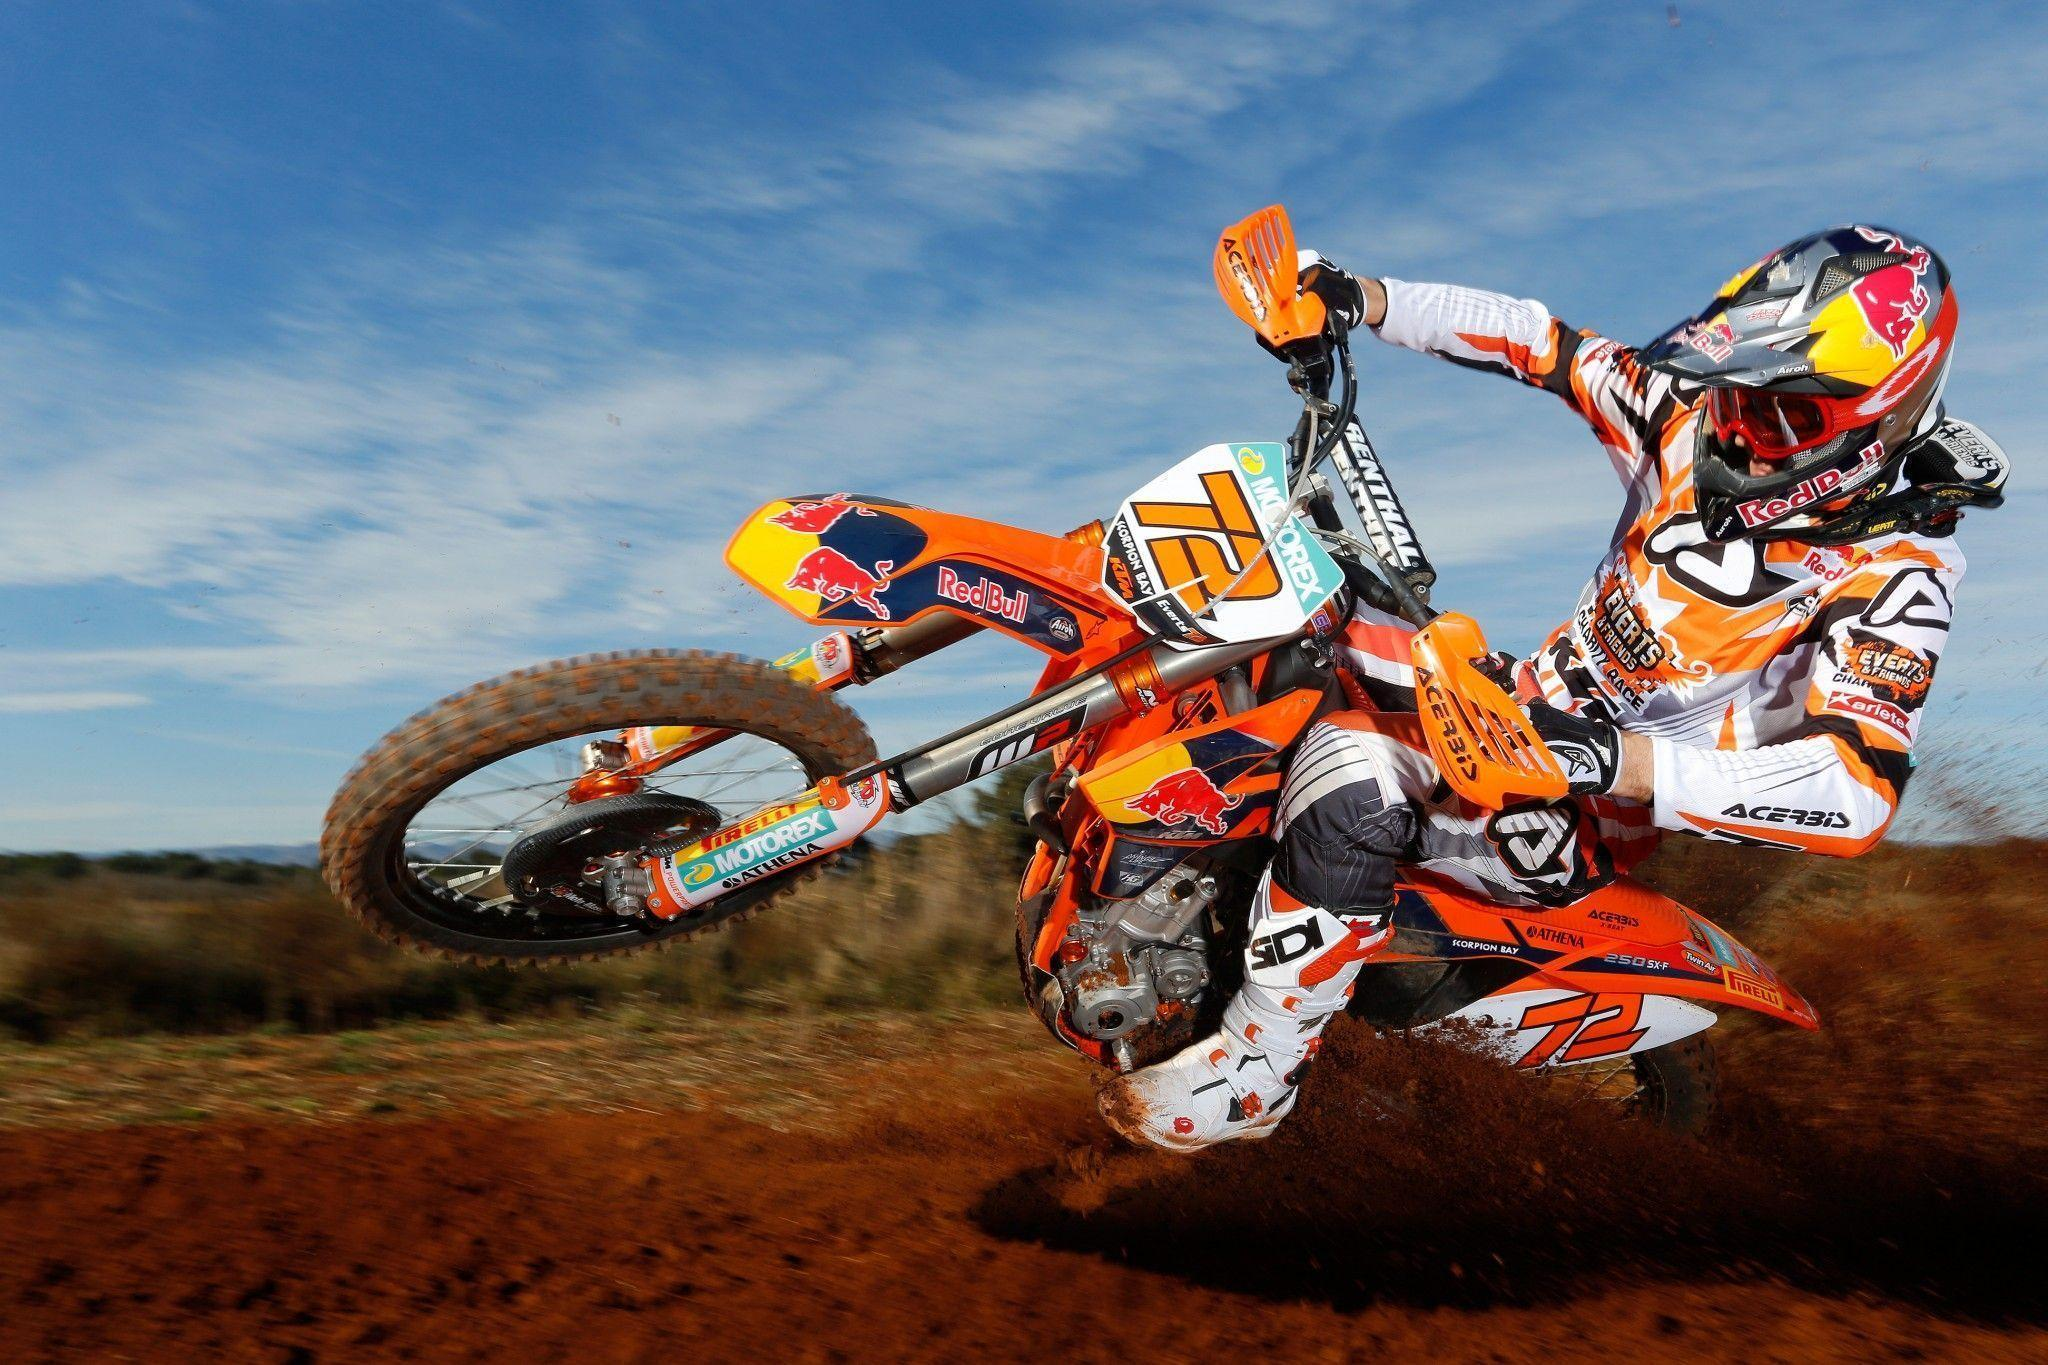 Ktm wallpapers wallpaper cave - Moto crosse ktm ...